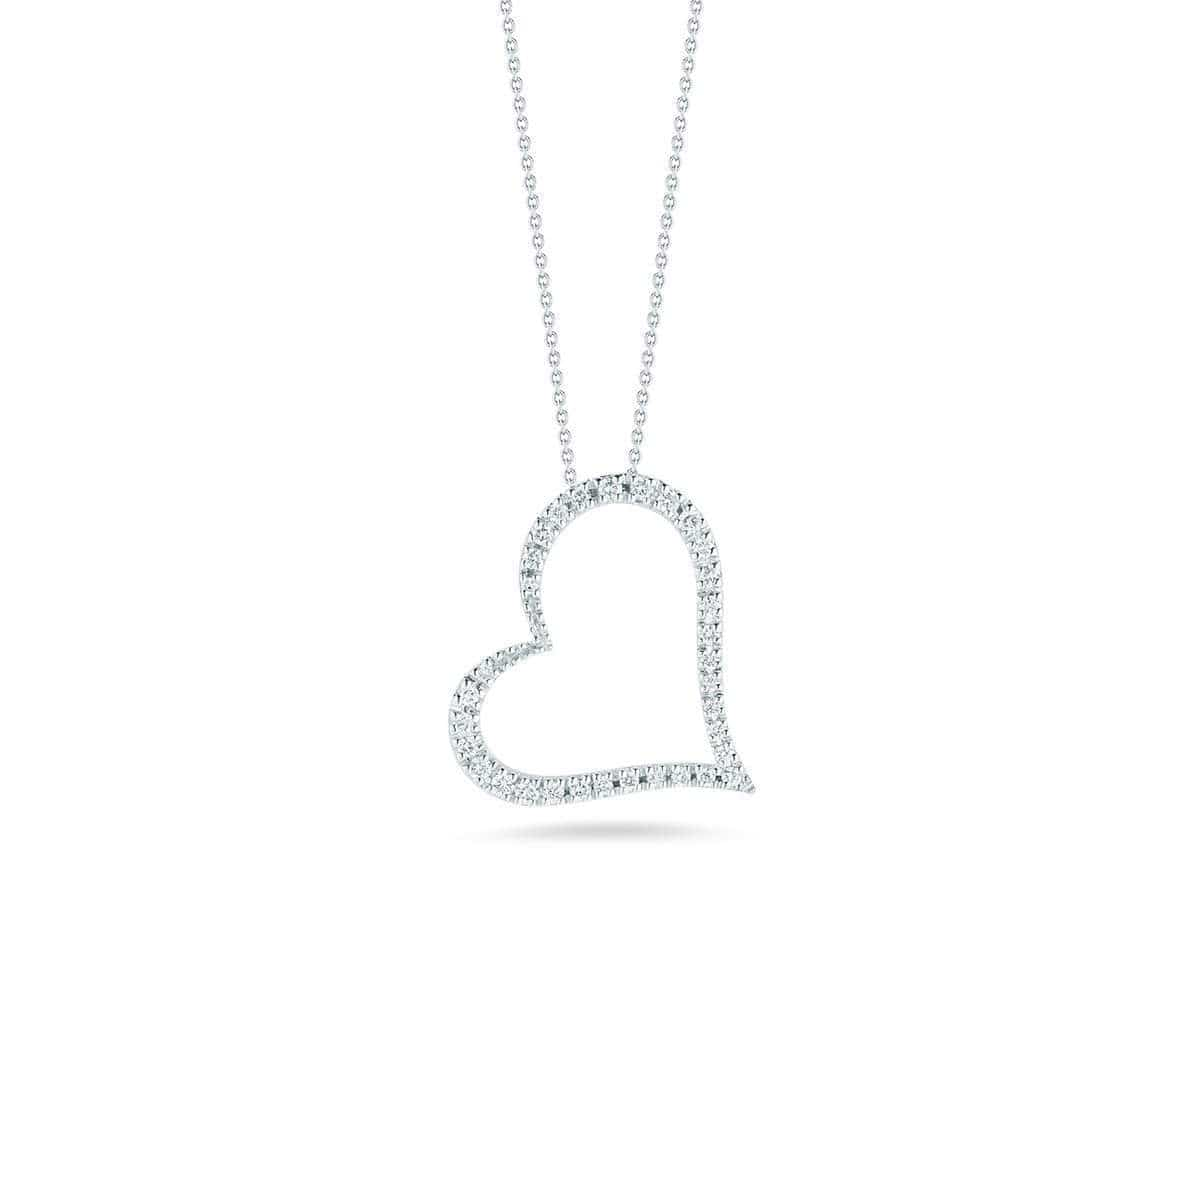 18k White Gold & Diamond Slanted Open Heart Necklace - 001443AWCHX0-Roberto Coin-Renee Taylor Gallery